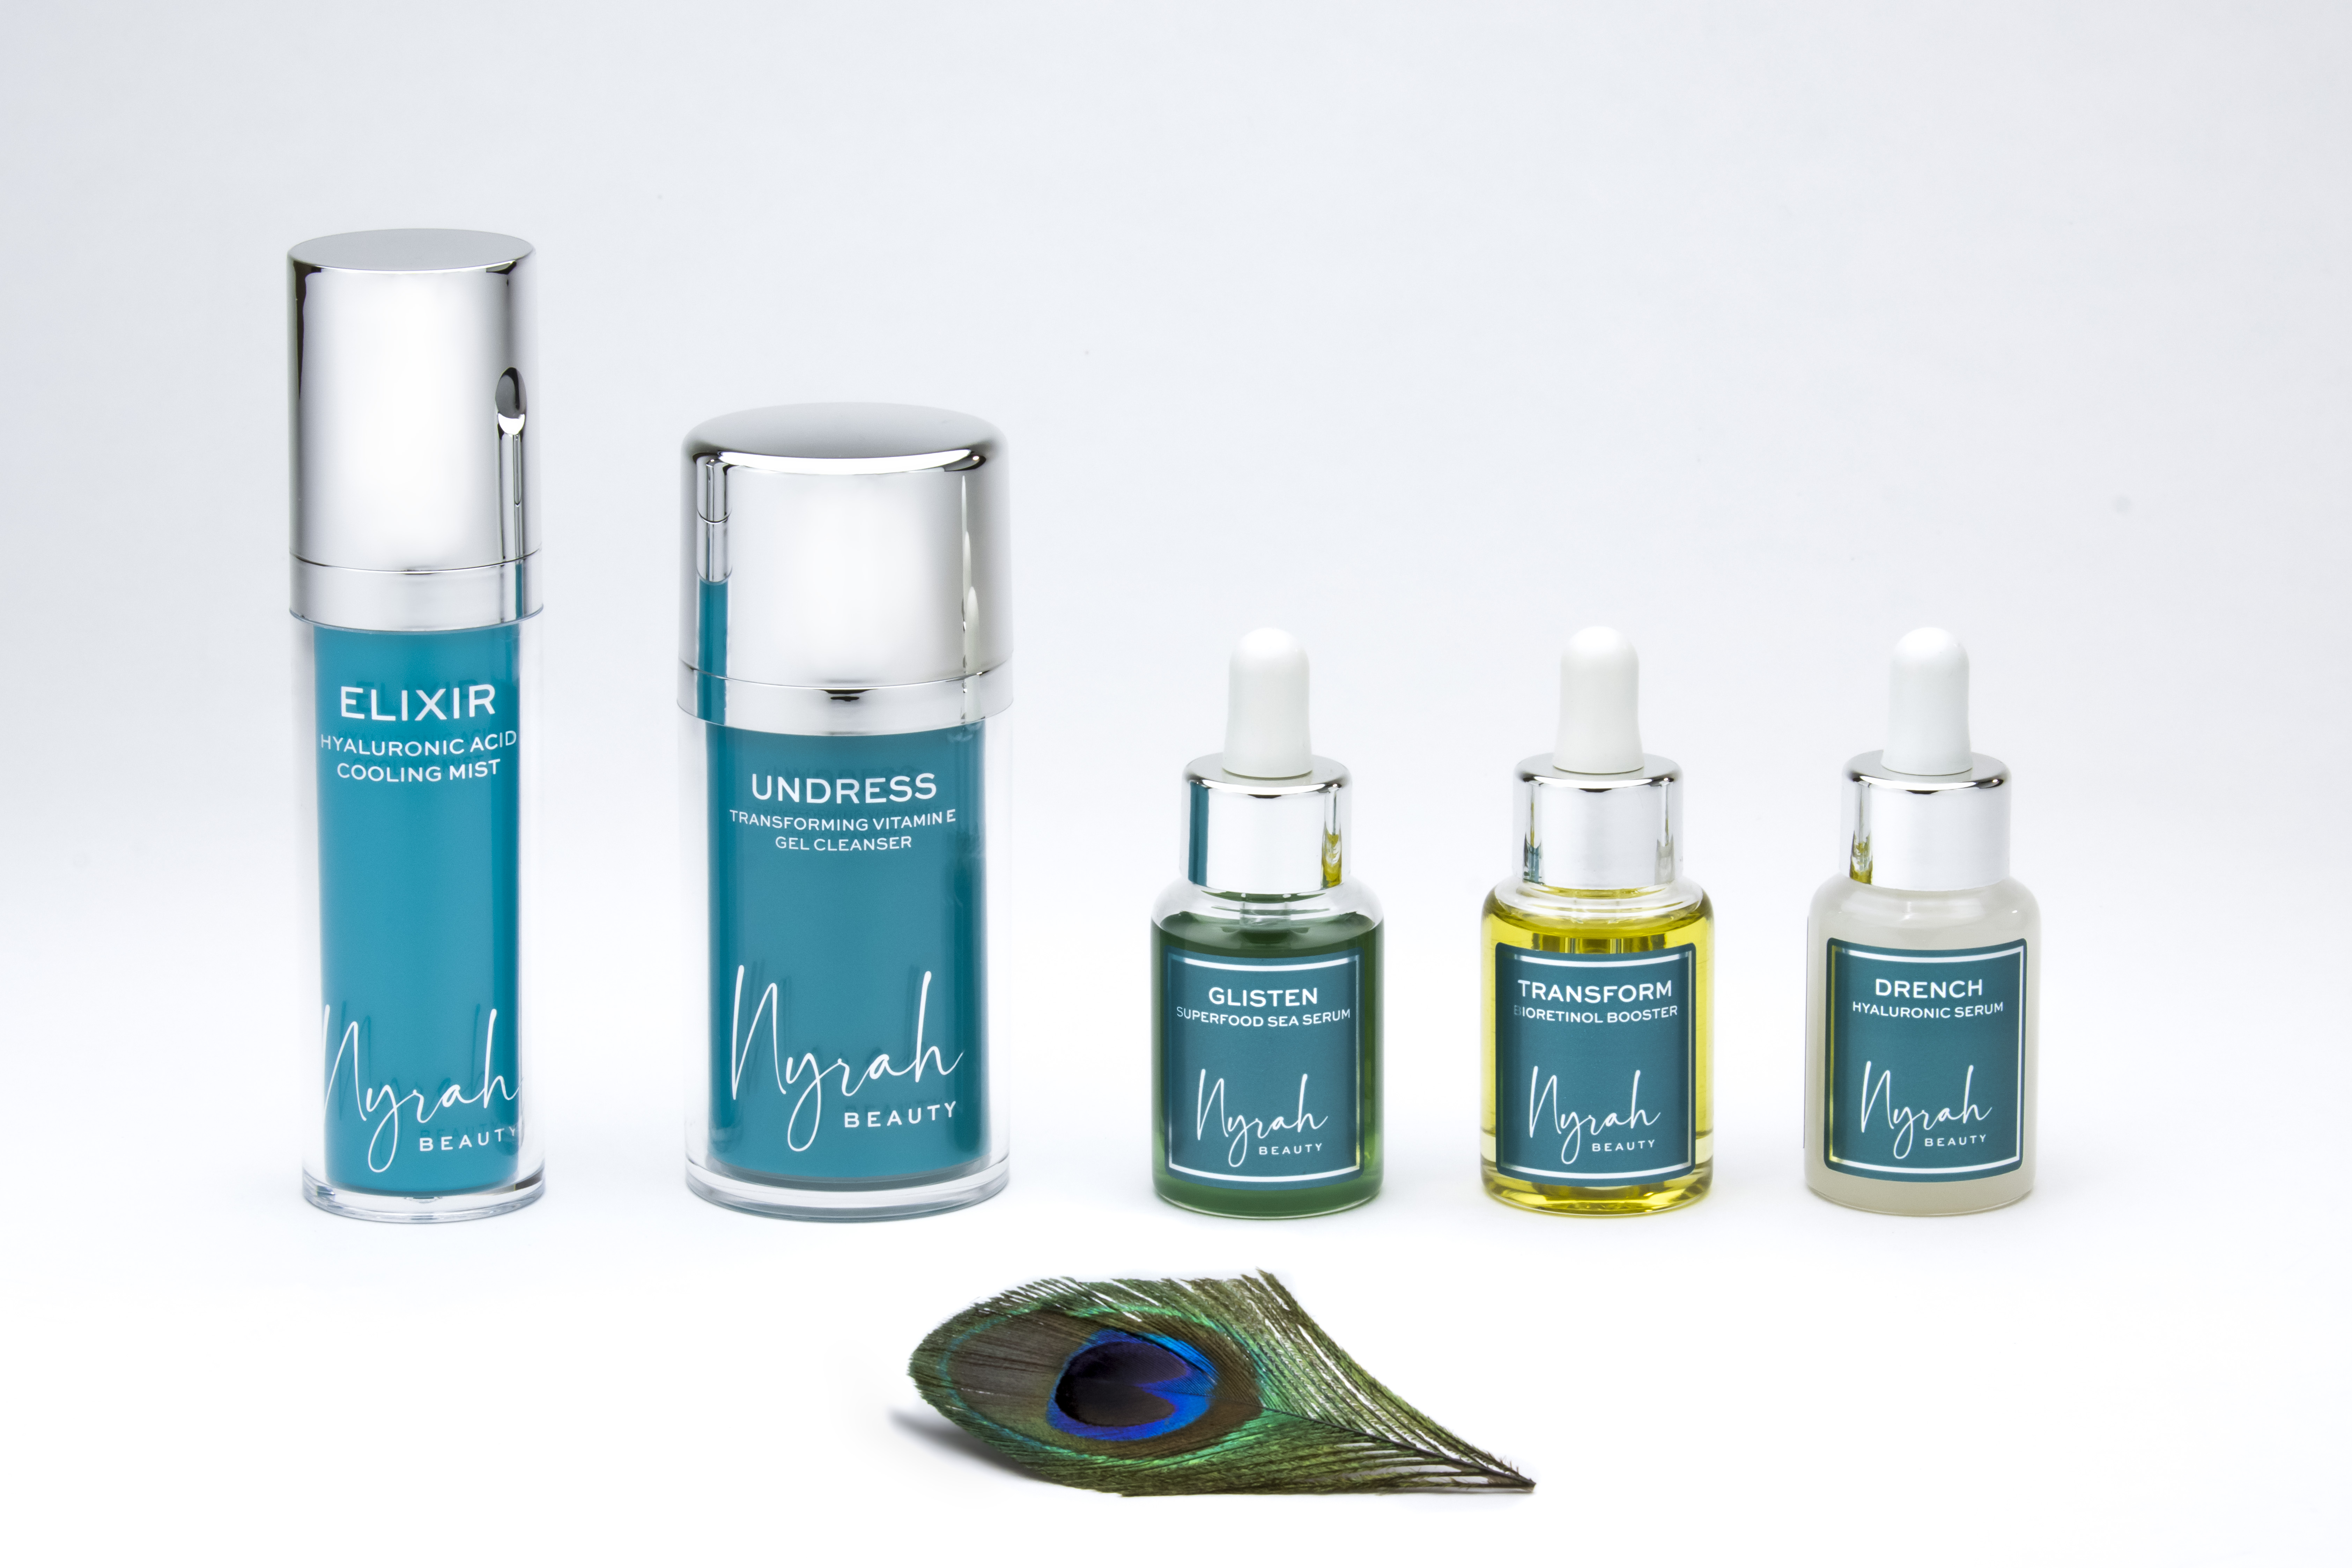 Nyrah Beauty – 'The light of beauty through the journey of life'